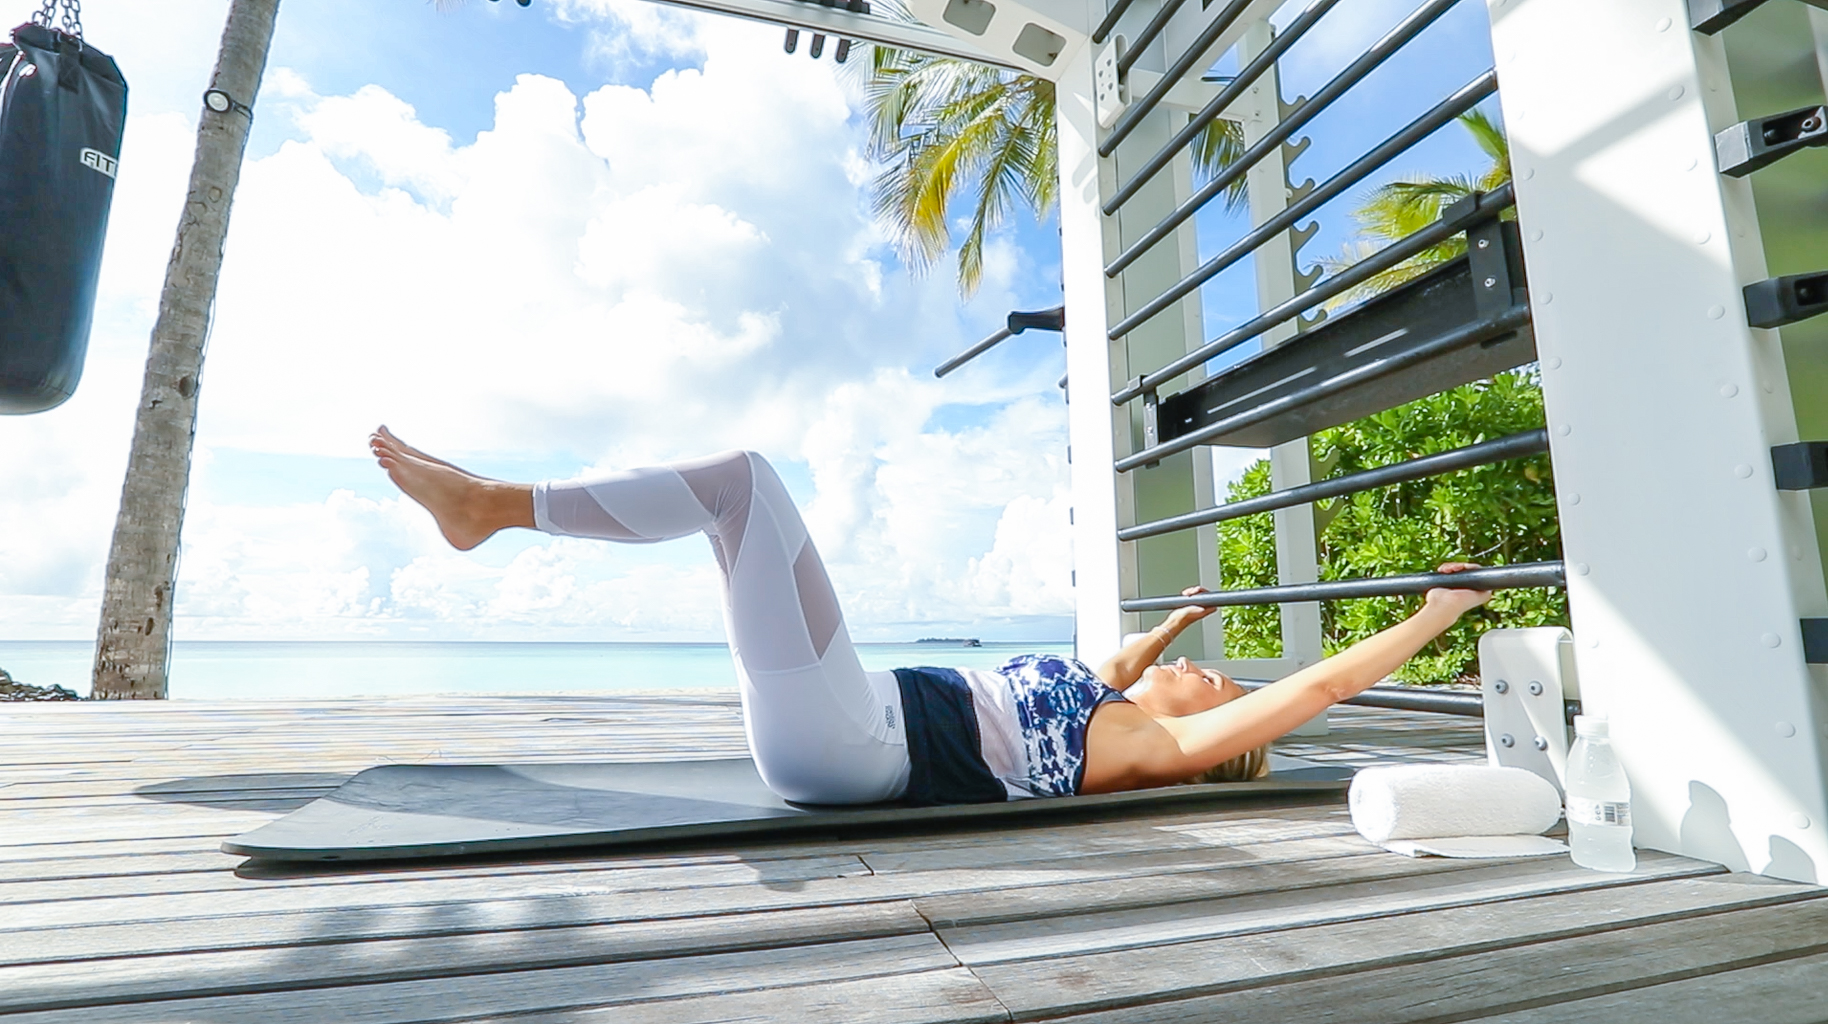 Fitness On Toast Faya Blog Girl Healthy Workout Training Maldives Working Out Ab Routine Beach Easy Moves Rock Hard Stomach Abdominals-5